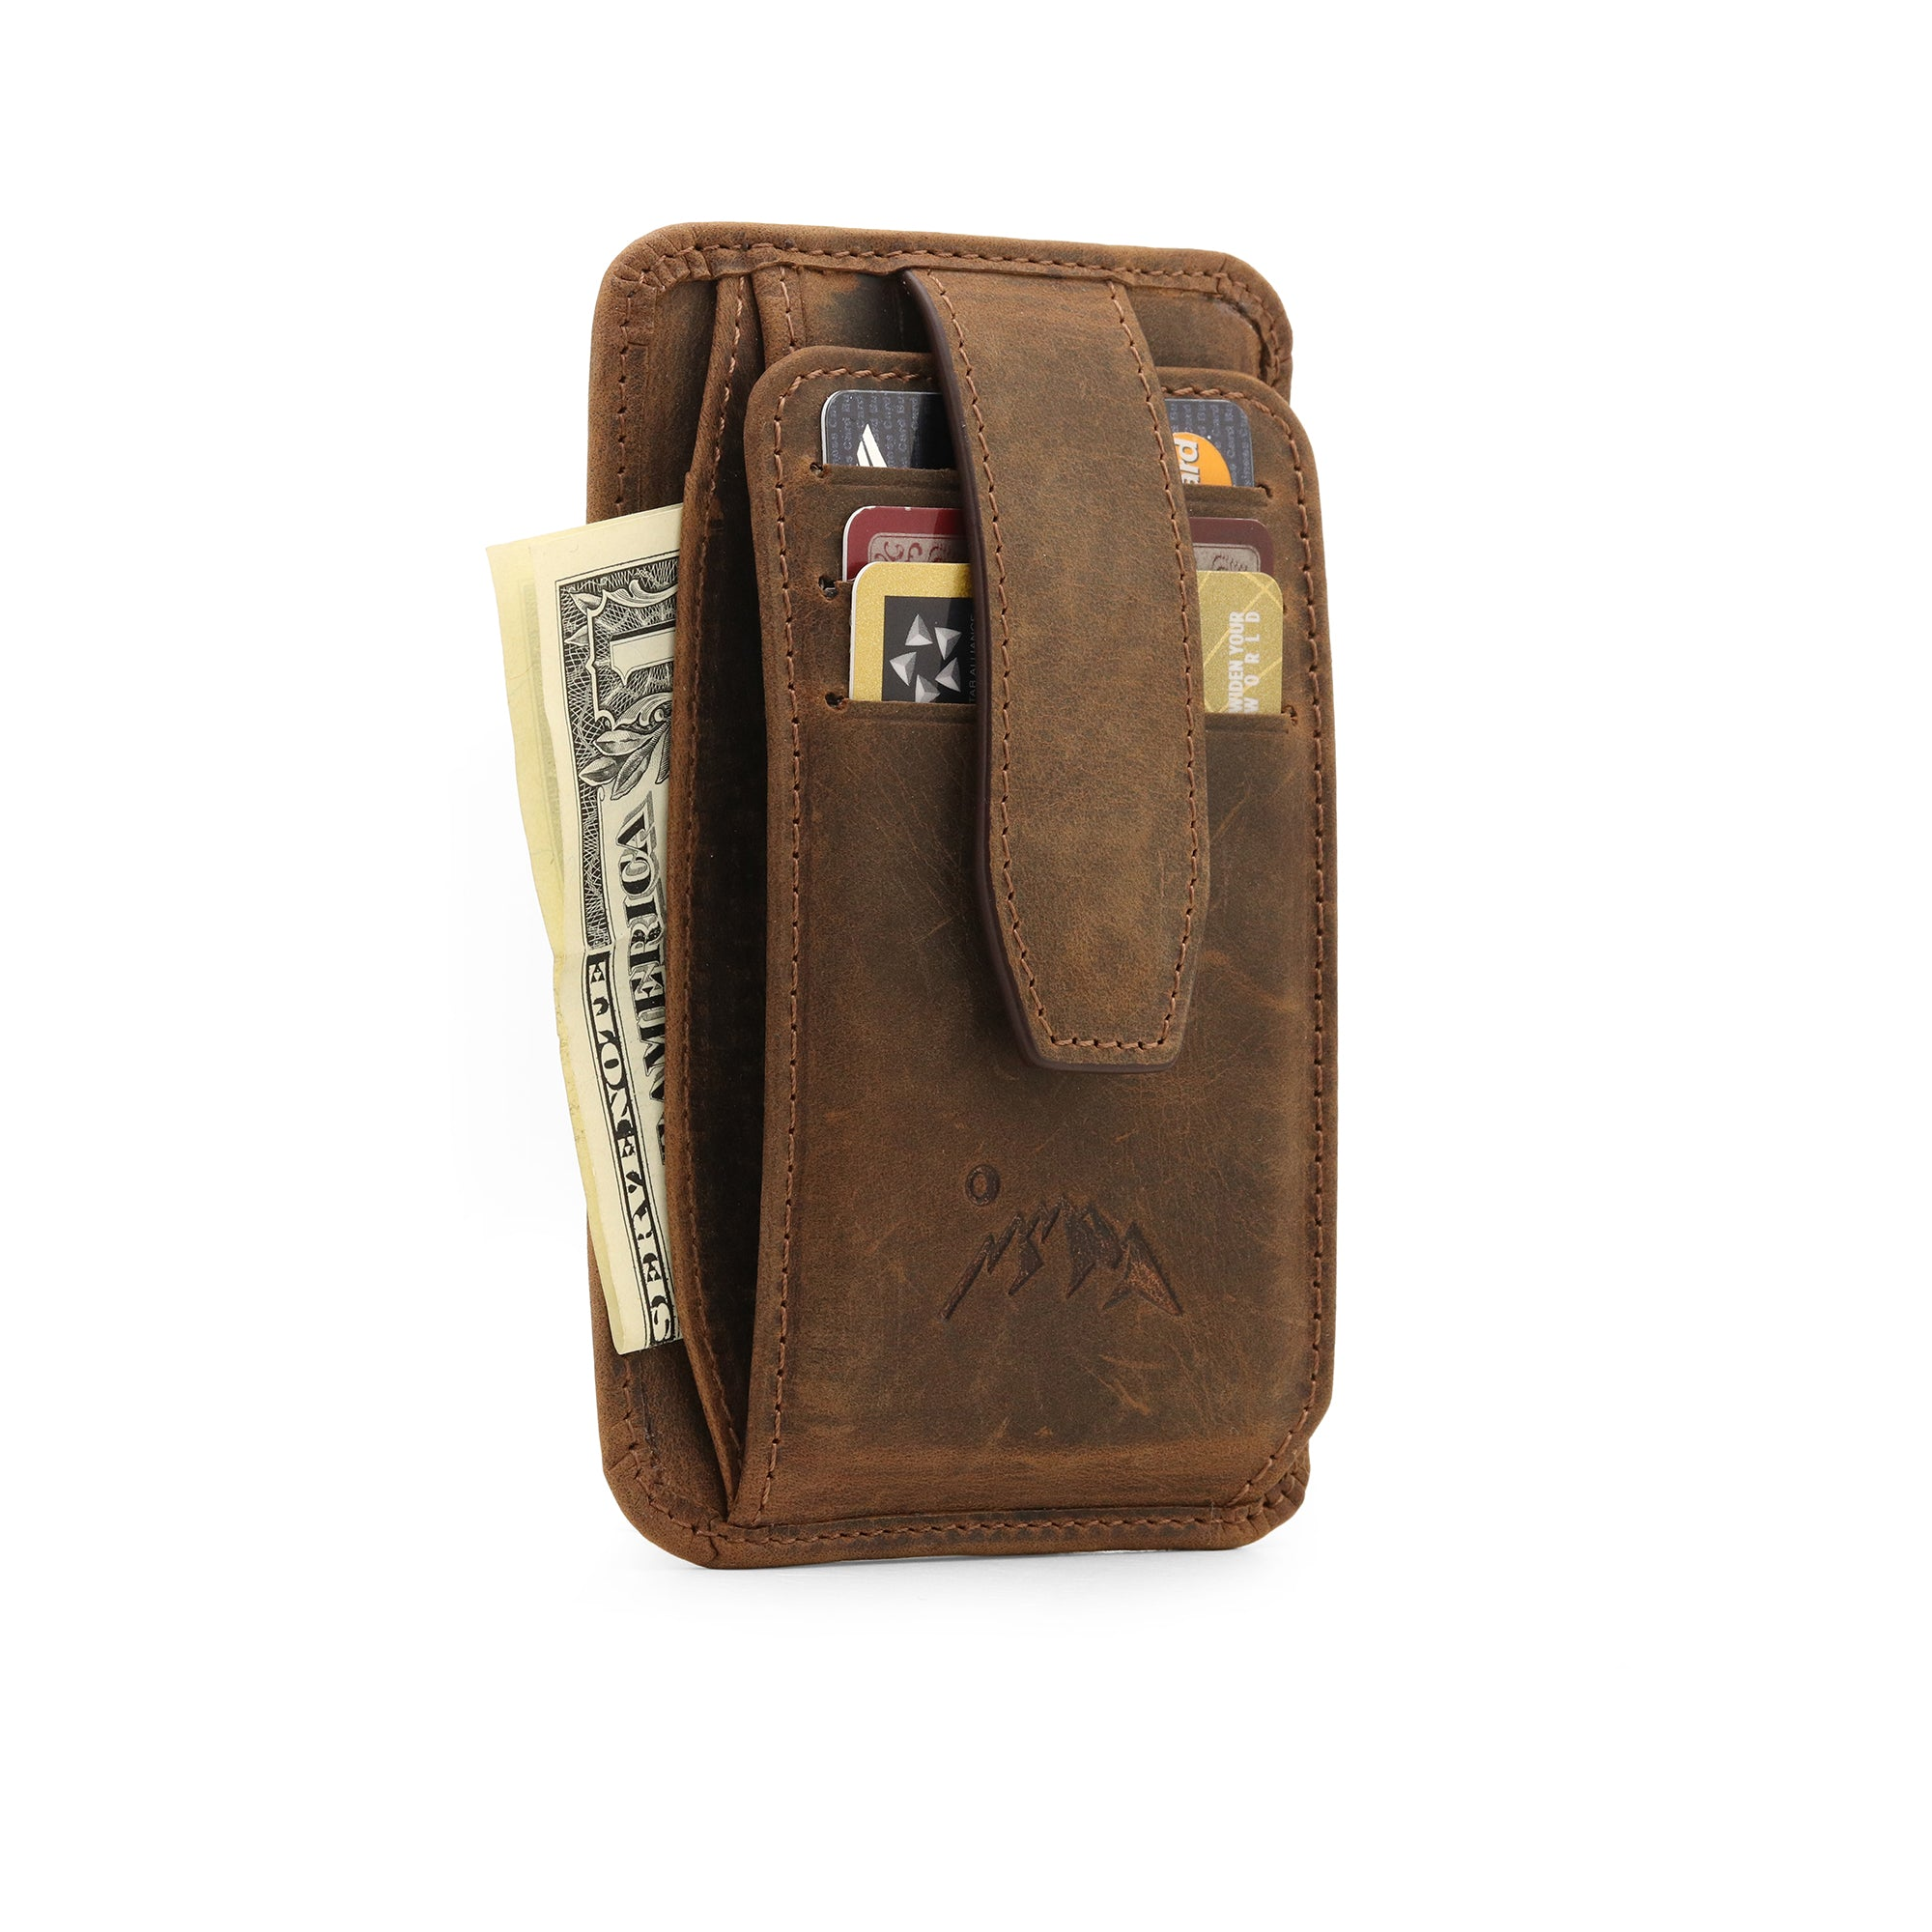 Canyon Leather Wallet - Cinnamon 3